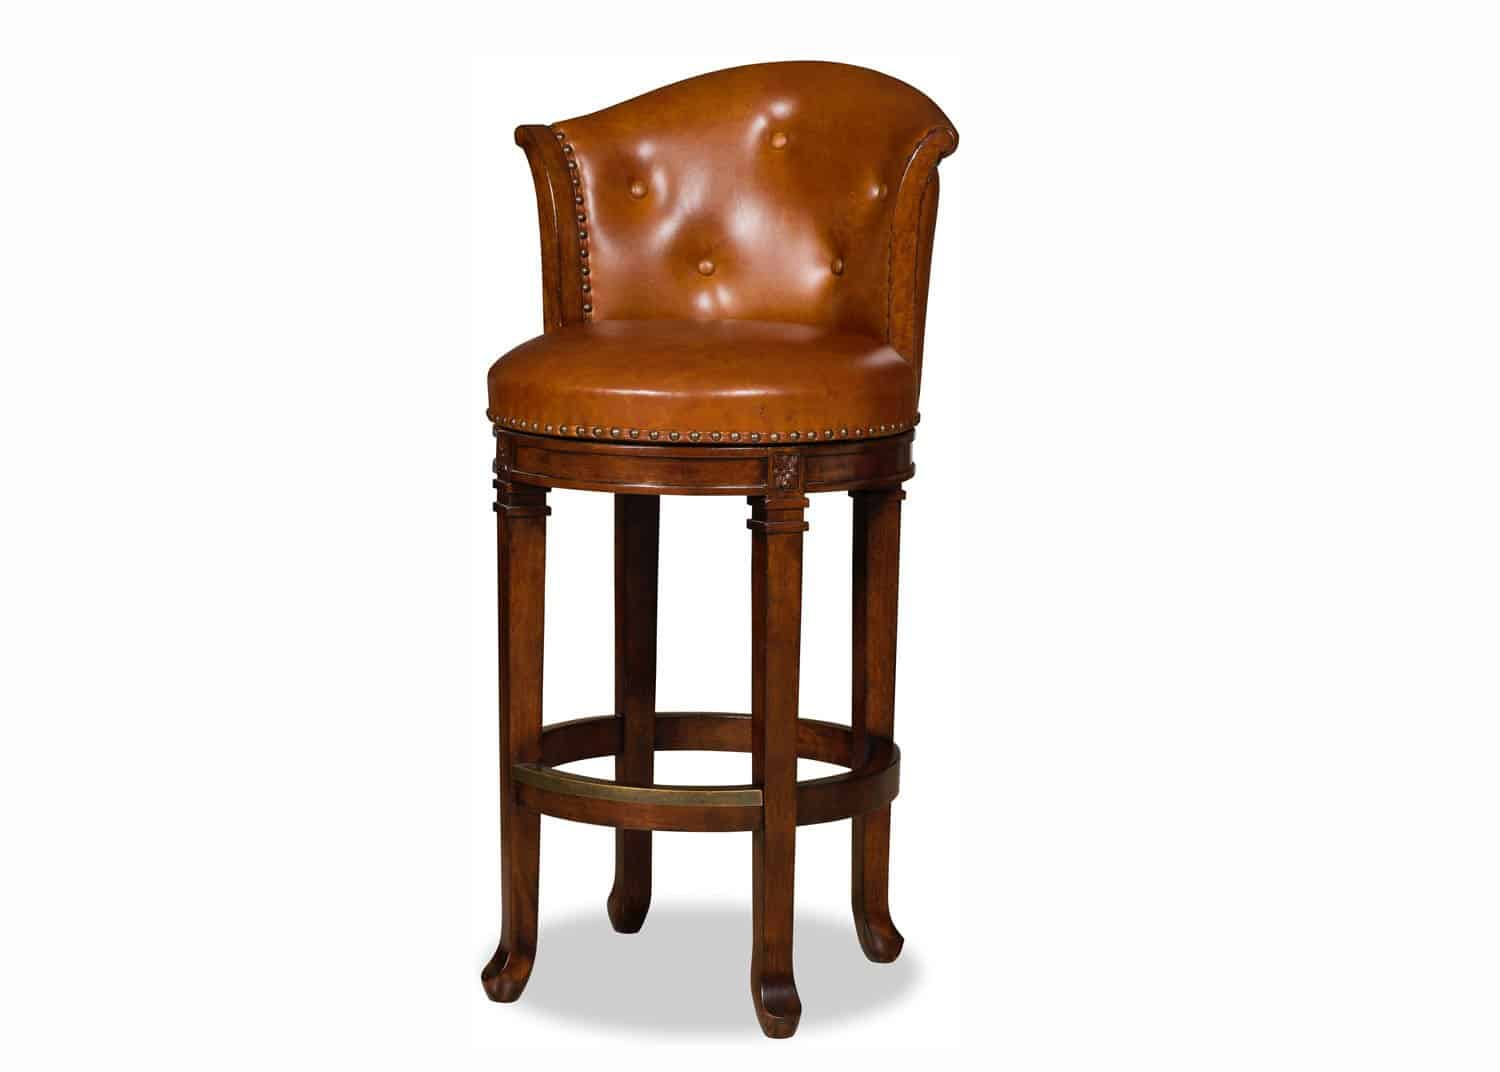 Vanderbilt Furniture Vanderbilt Bar Stool Furniture Itookco